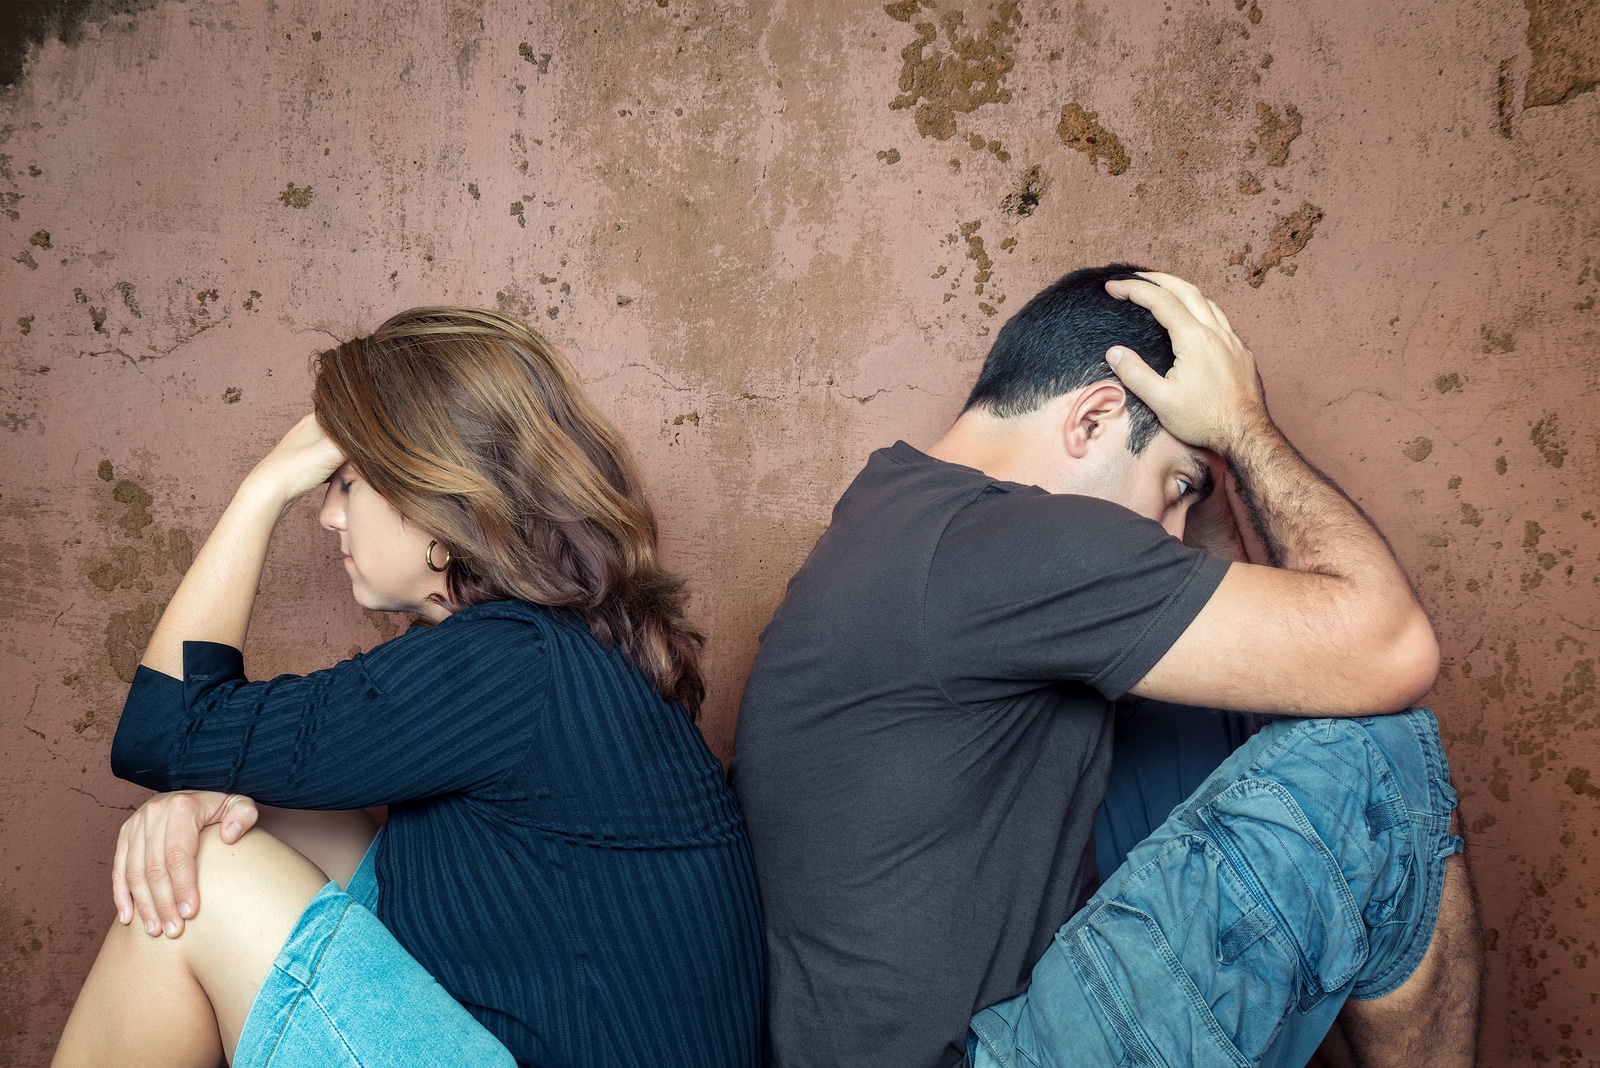 30 signs youre in a toxic relationship